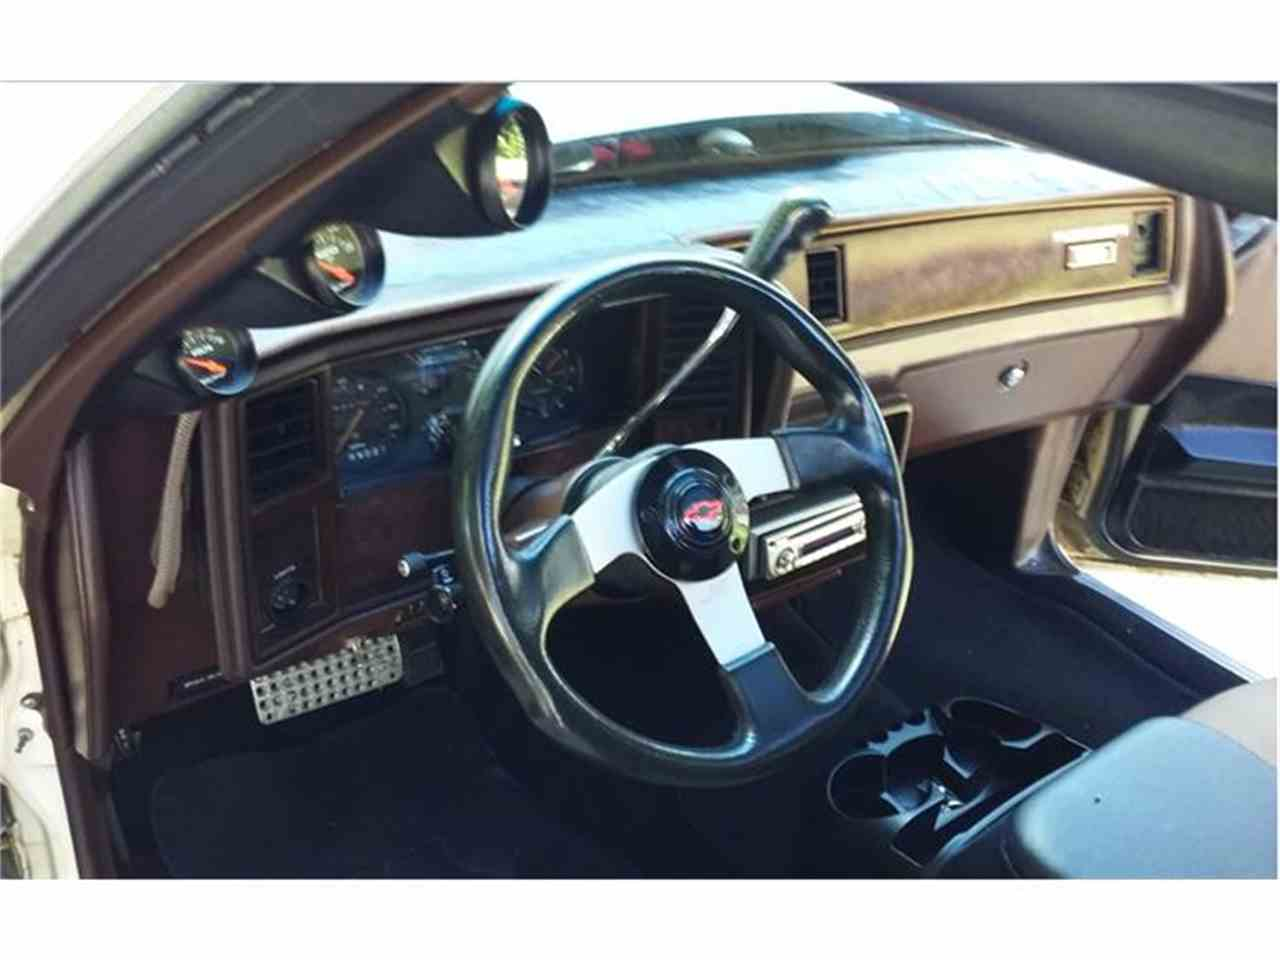 Large Picture of '83 Chevrolet El Camino - $8,700.00 Offered by a Private Seller - J05V